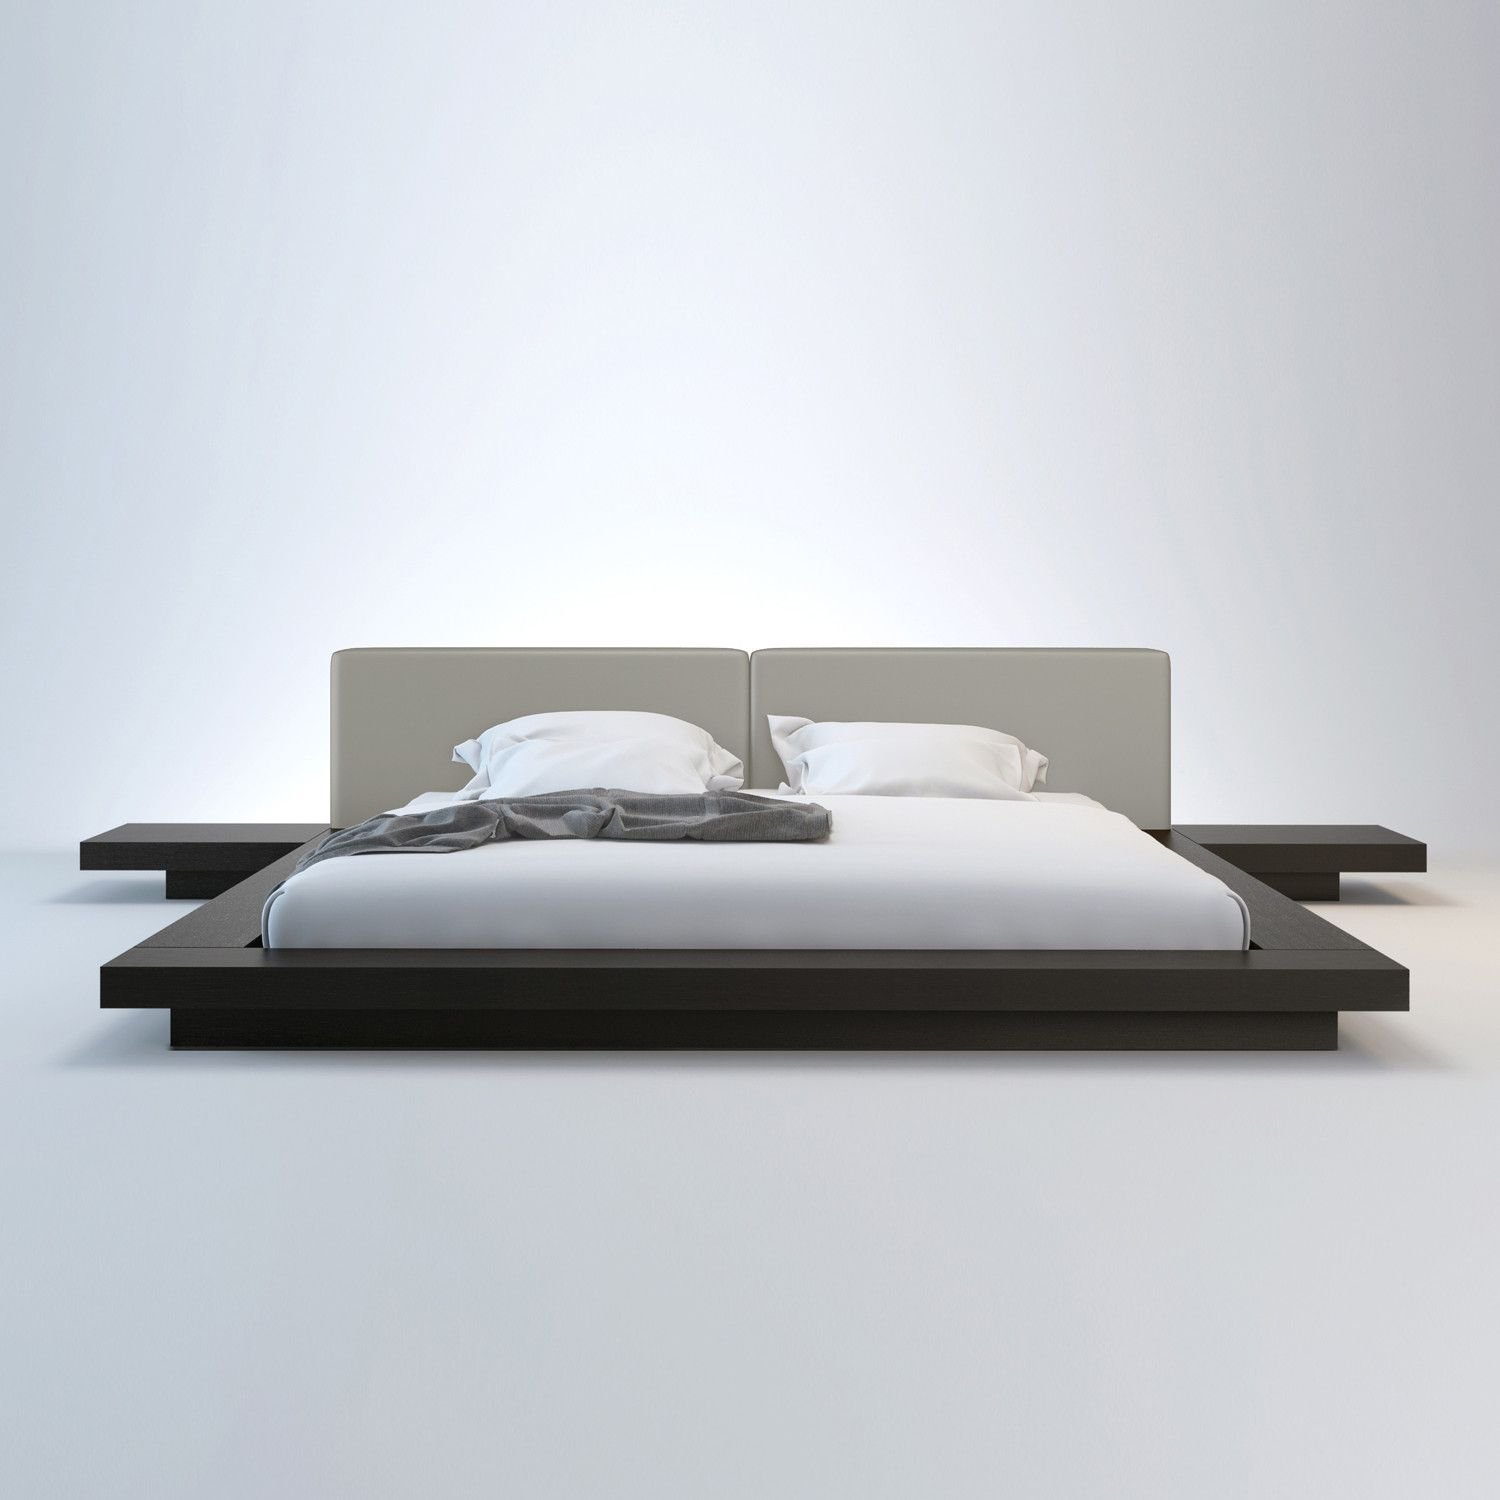 Worth Bed W Matching Nightstands Bed Design Modern Platform Bed Modern Bed